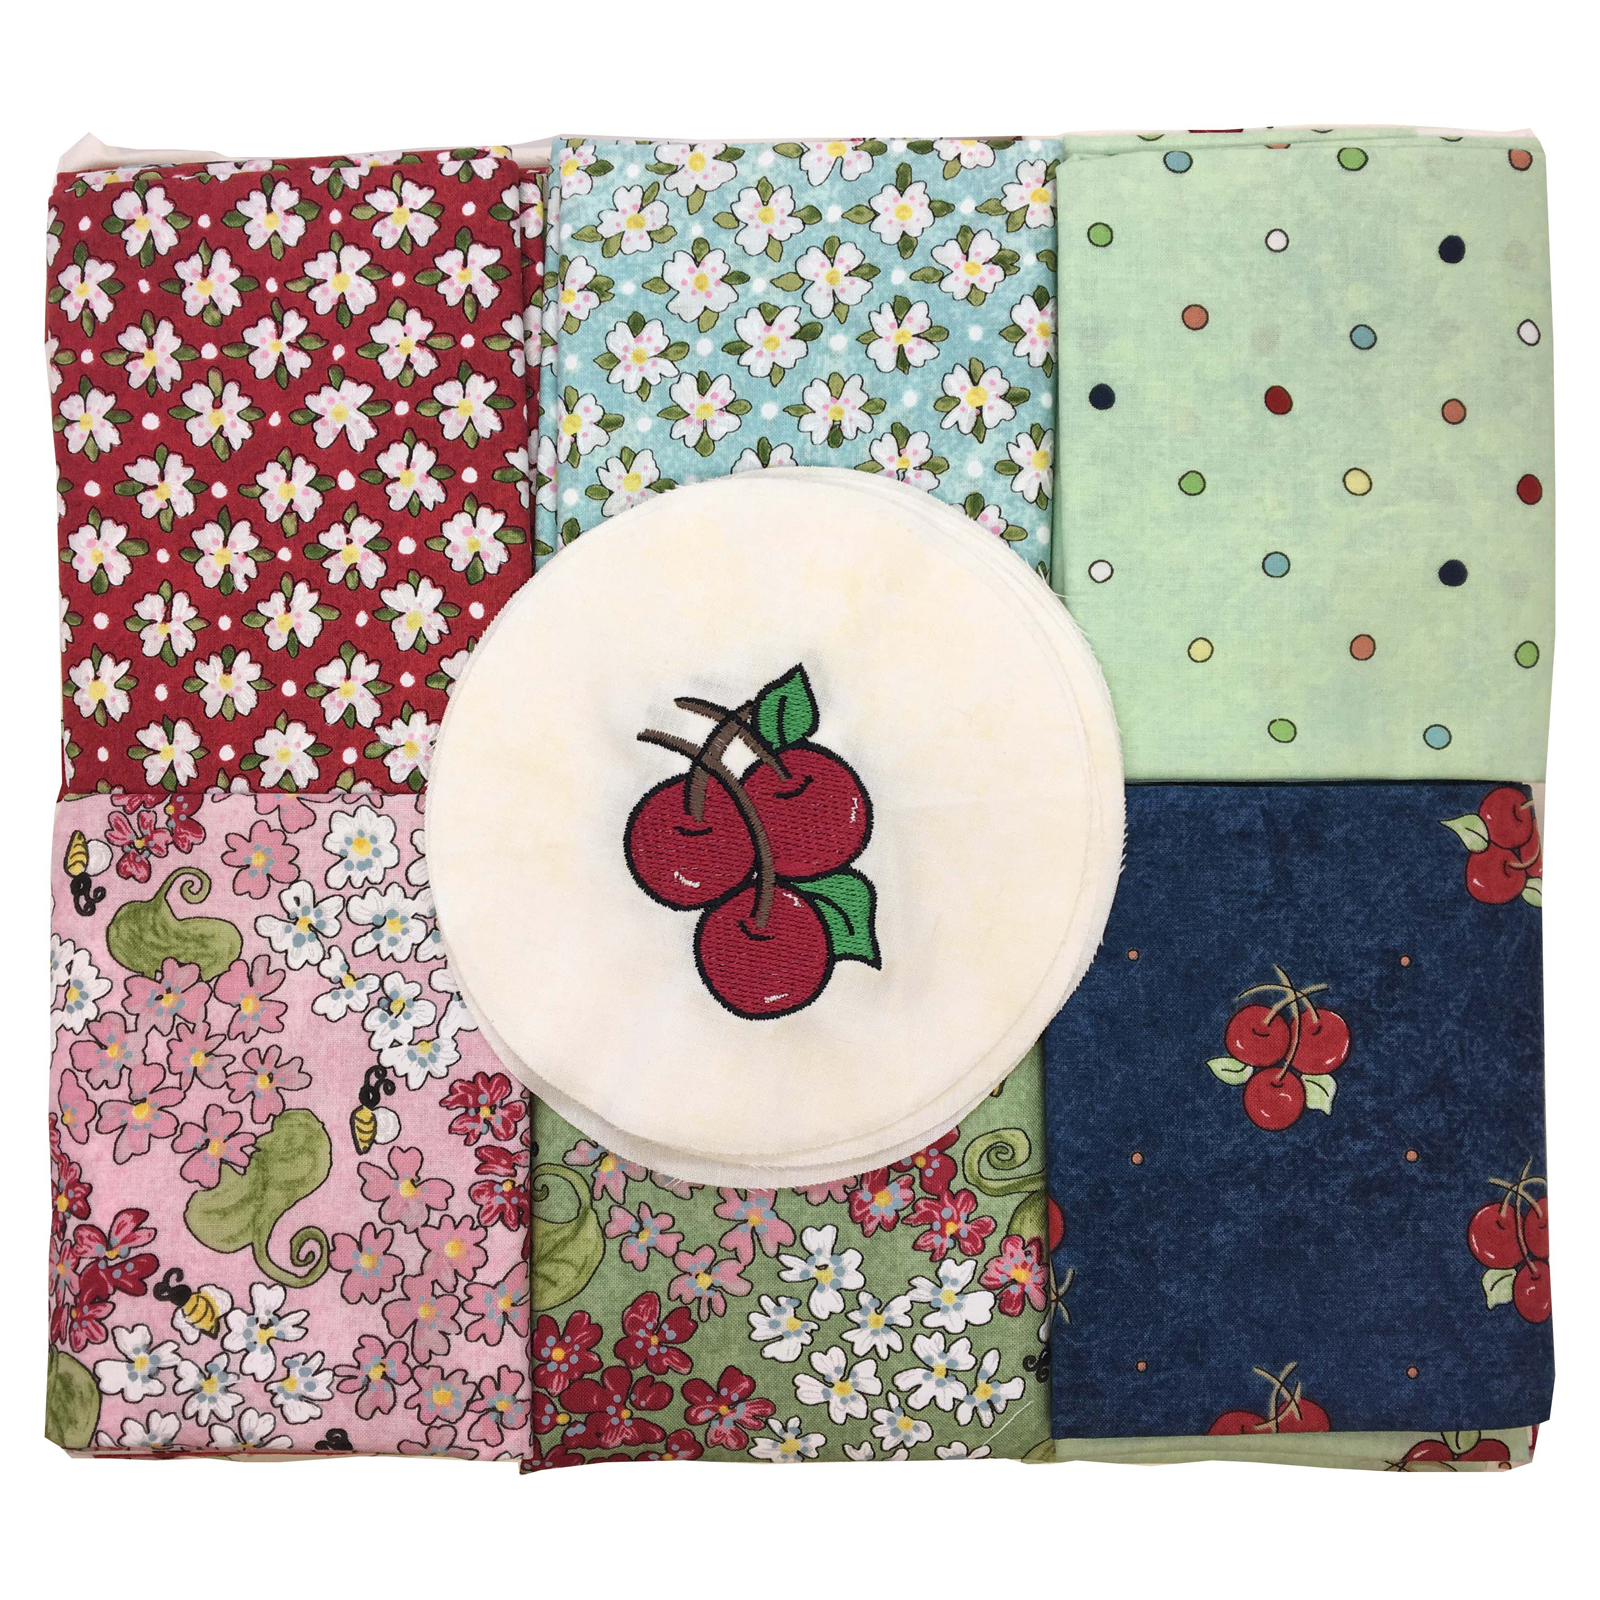 Fabric.com Cherry Jubilee Quilt Kit FQ Multi - Exclusive